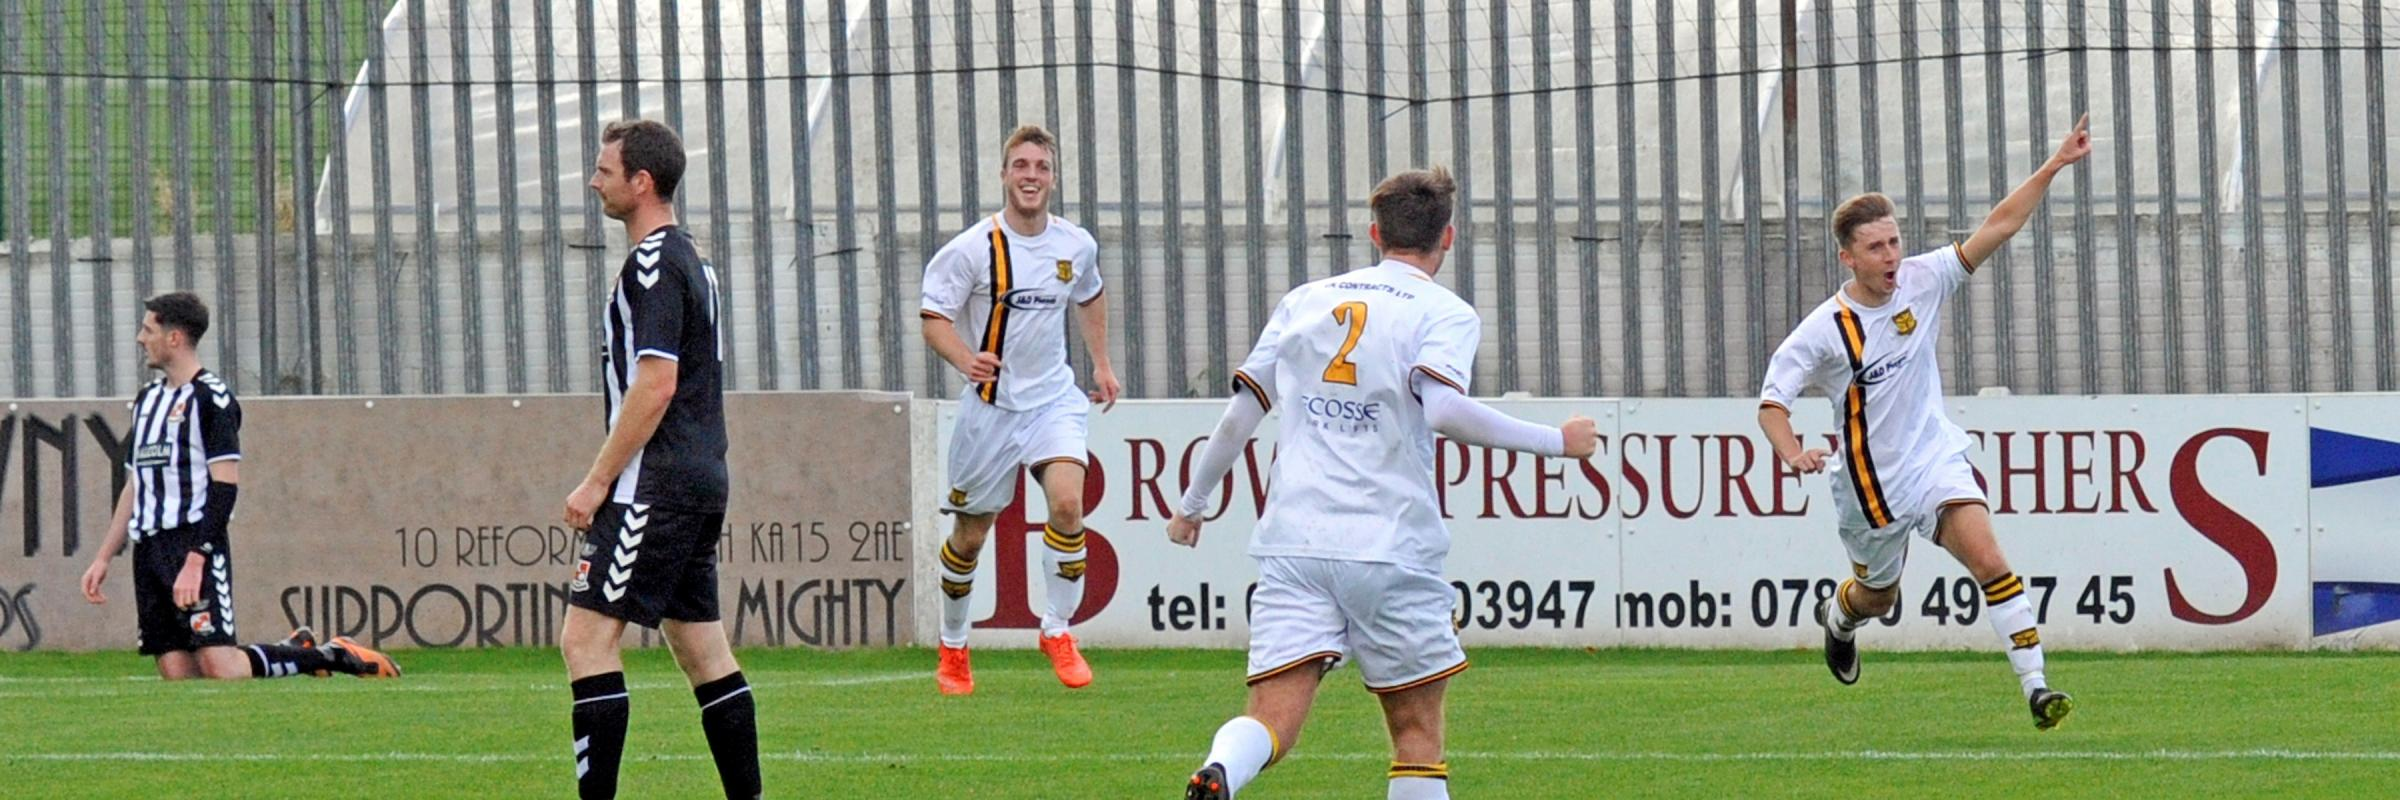 LADESIDE LEVEL: Jon Scullion celebrates after equalising for Kilbirnie to make it 1-1 at Bellsdale Park.